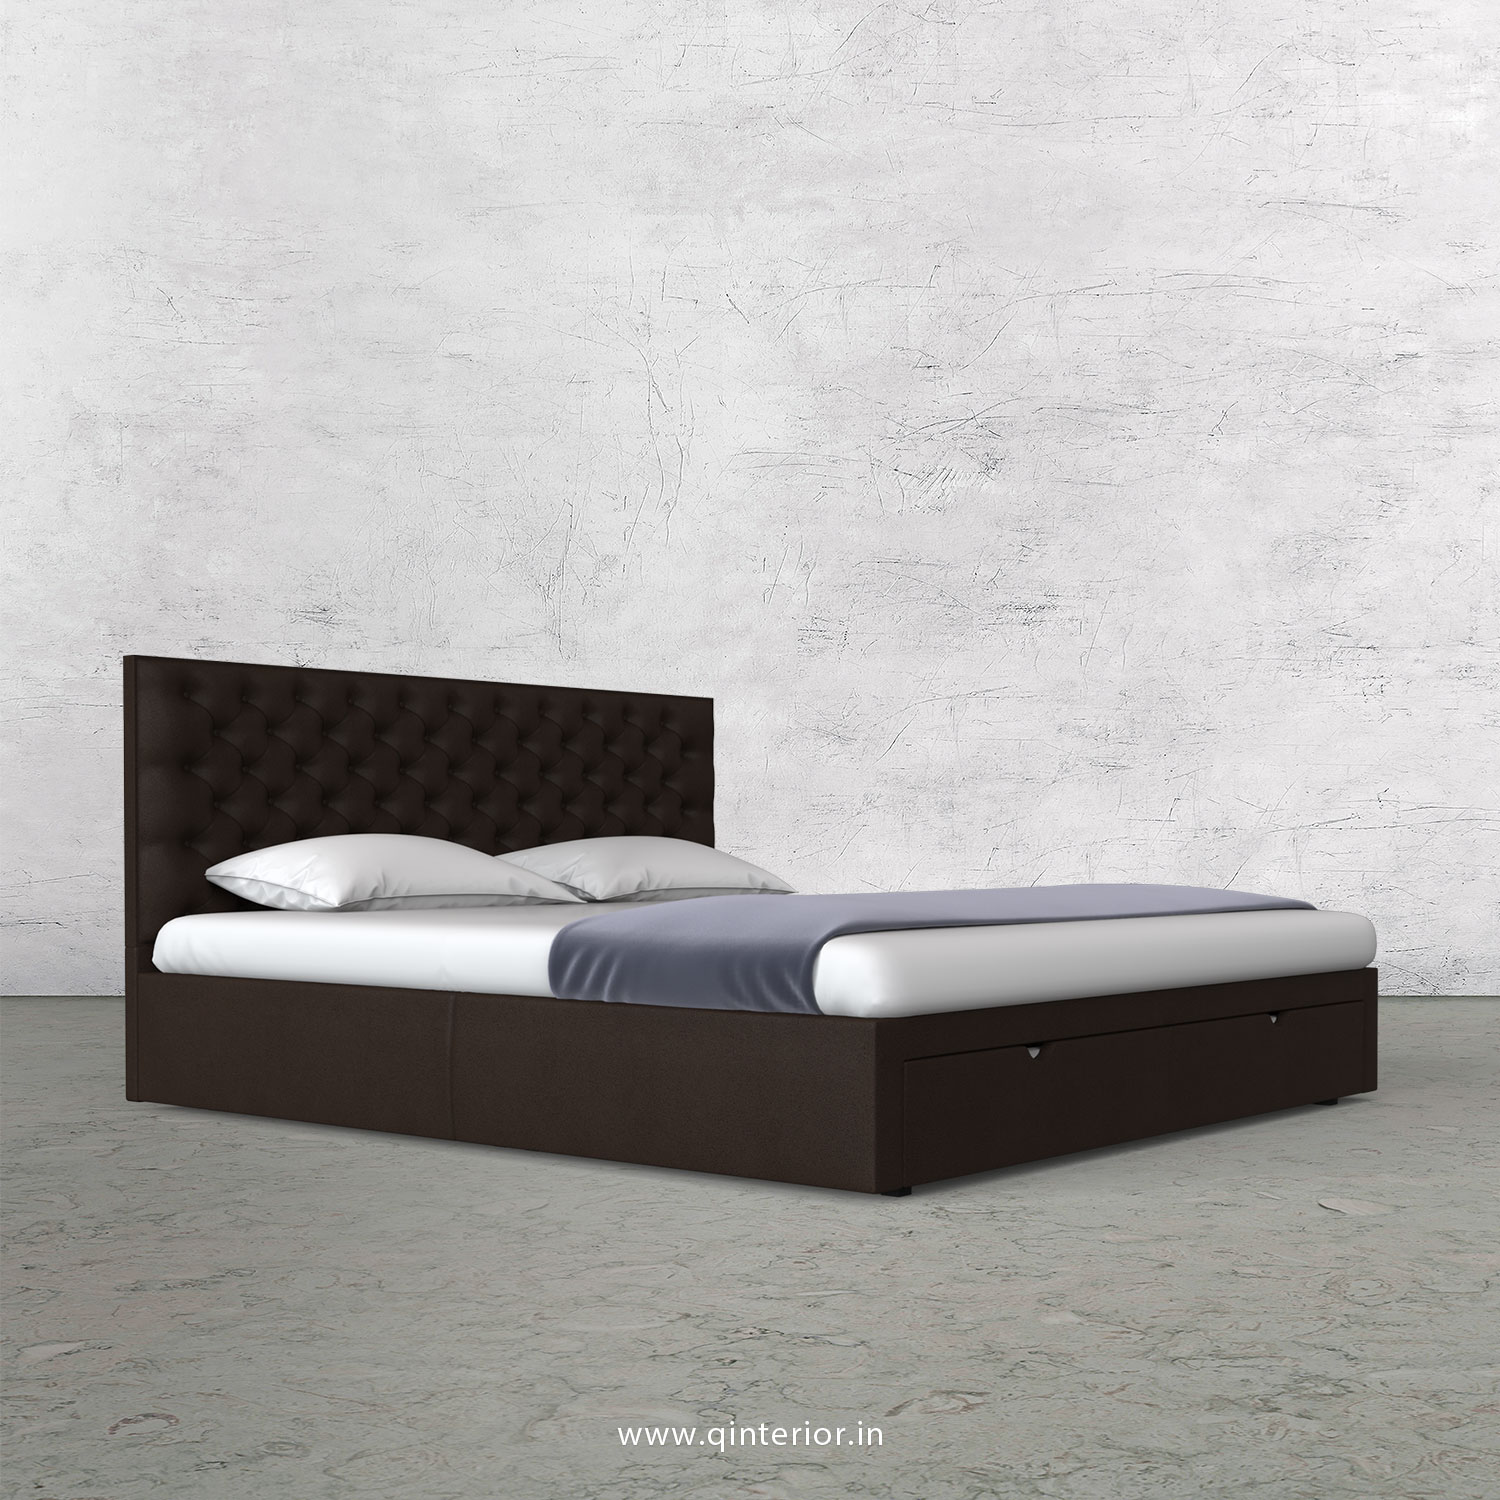 Orion Queen Storage Bed in Fab Leather Fabric - QBD001 FL16